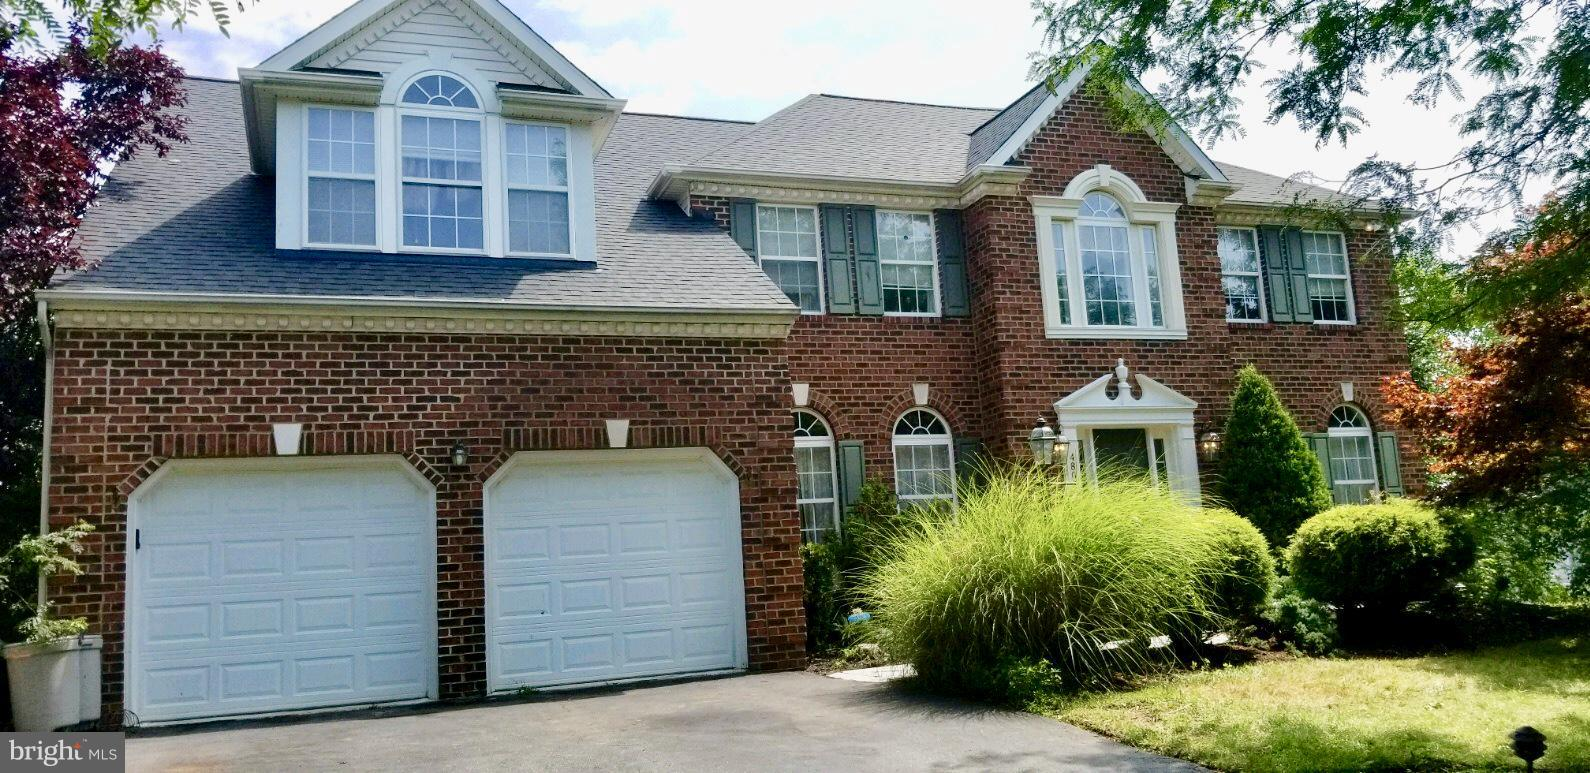 4800 FORGE ACRE DRIVE, PERRY HALL, MD 21128